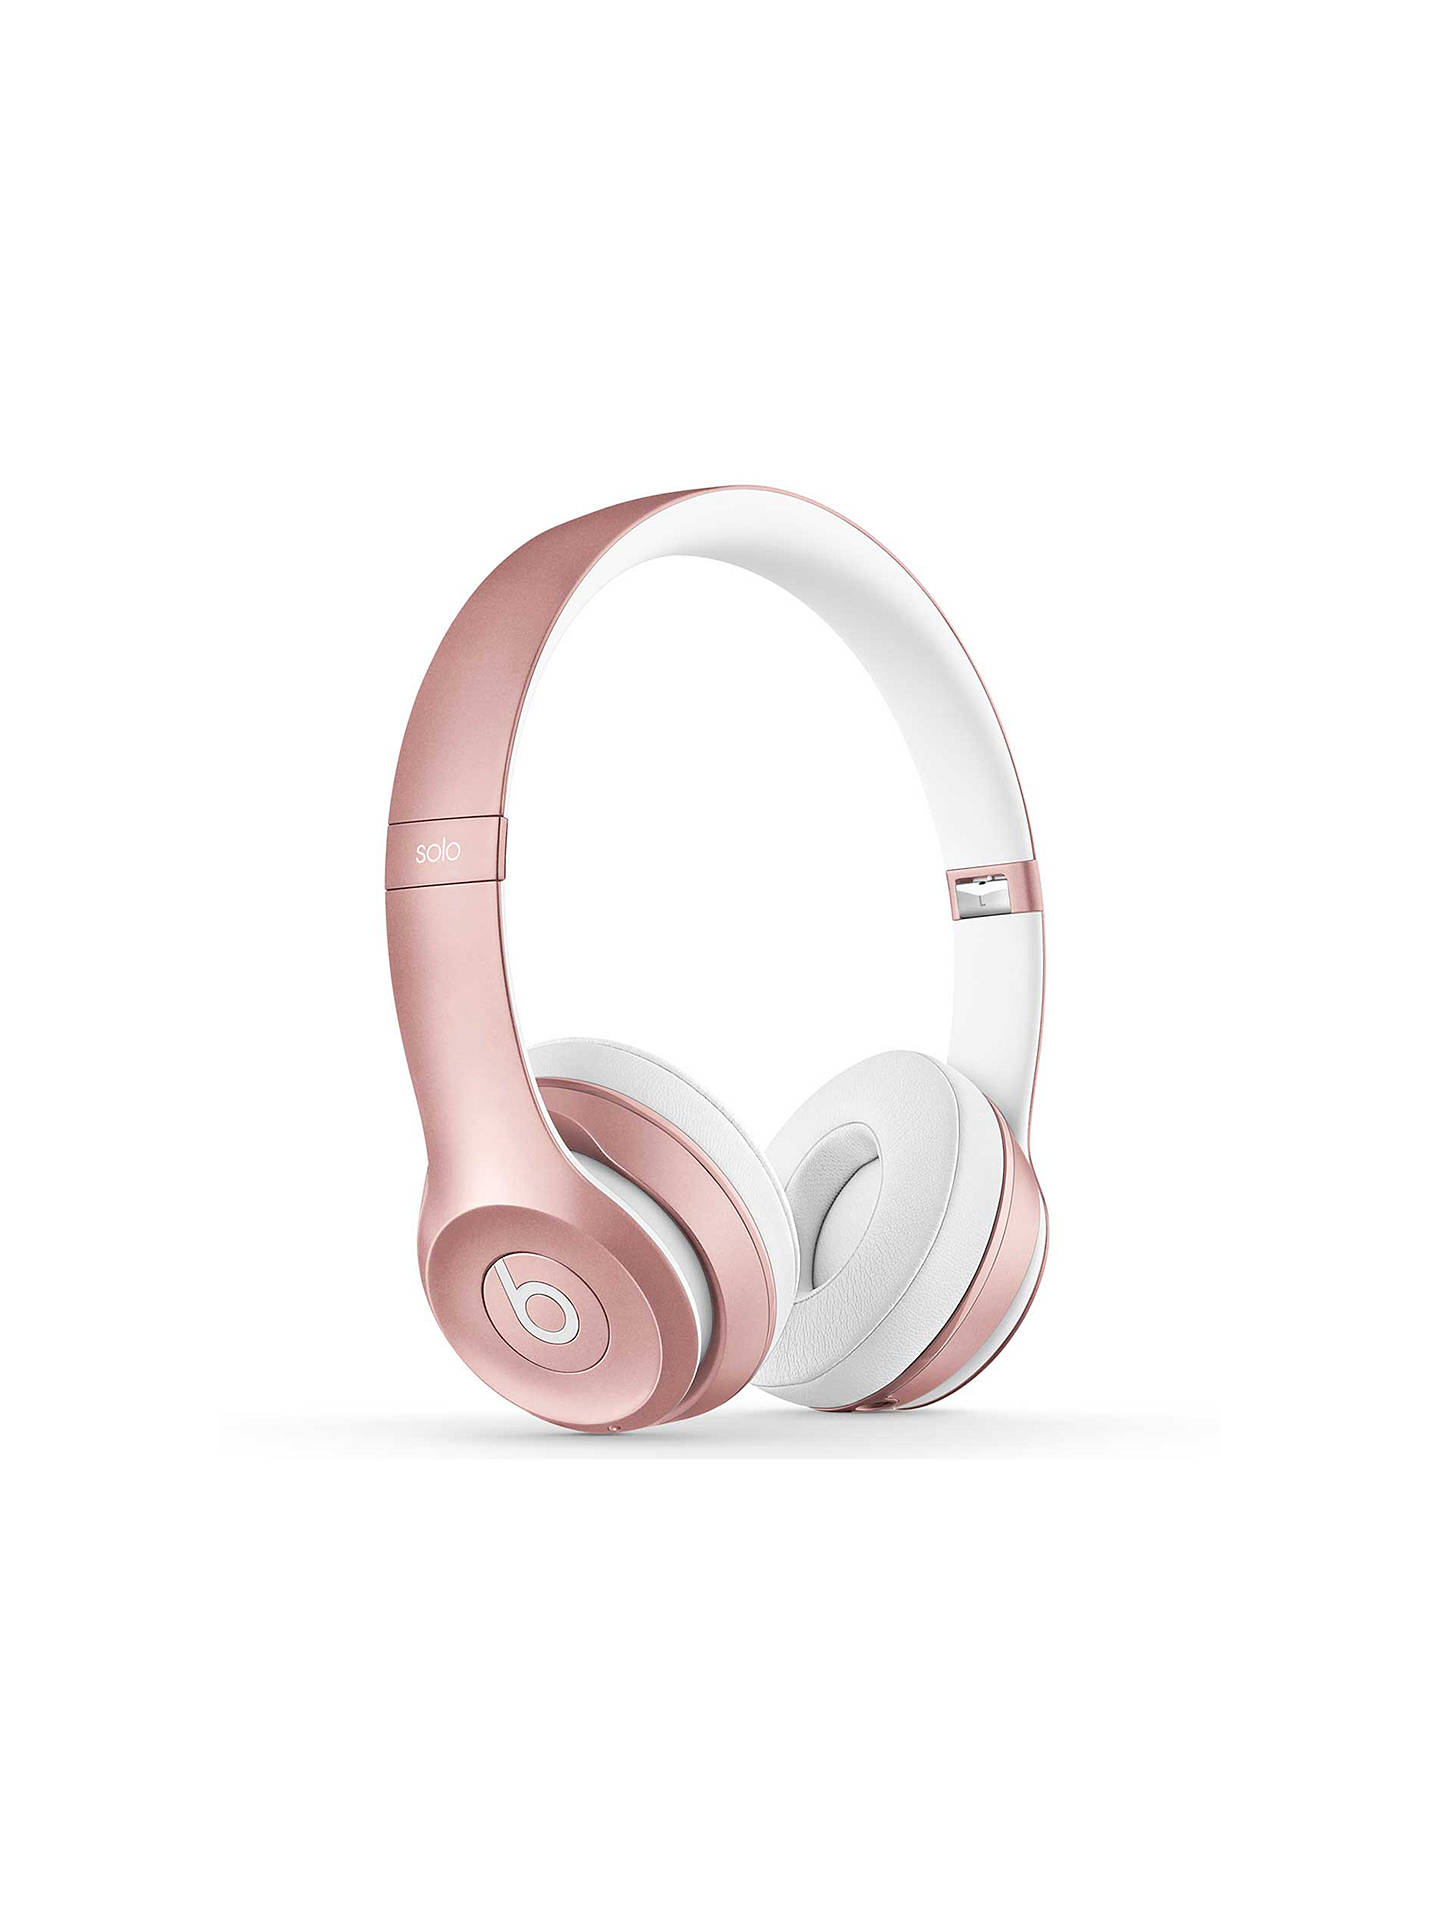 Buy Beats™ by Dr. Dre™ Solo 2 Wireless On-Ear Headphones with Bluetooth, Icon Collection, Rose Gold Online at johnlewis.com